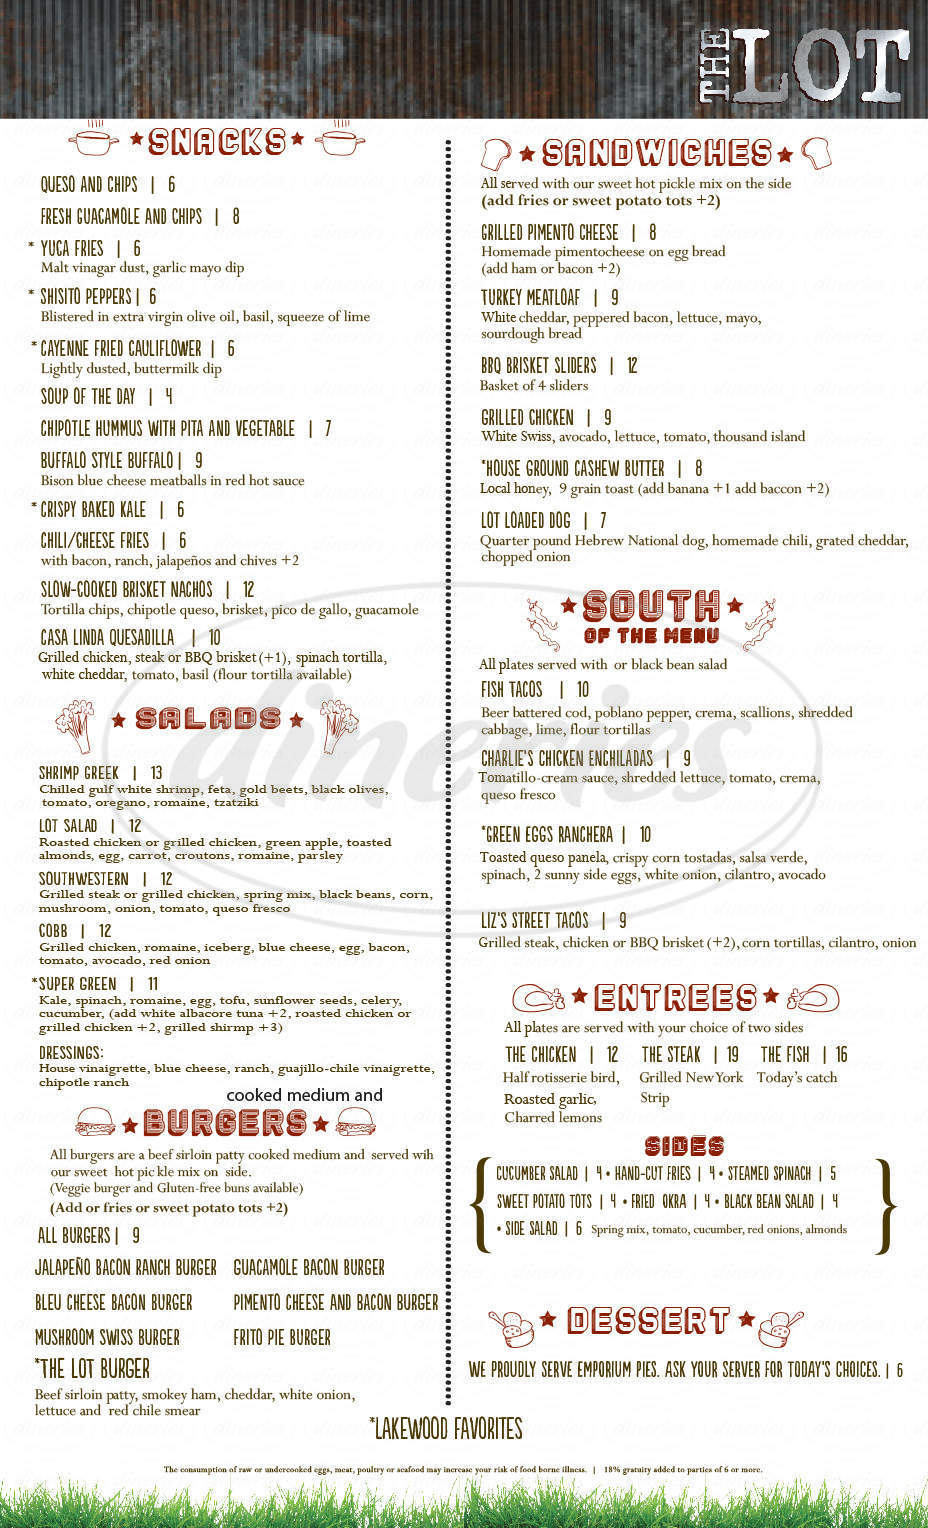 menu for The Lot